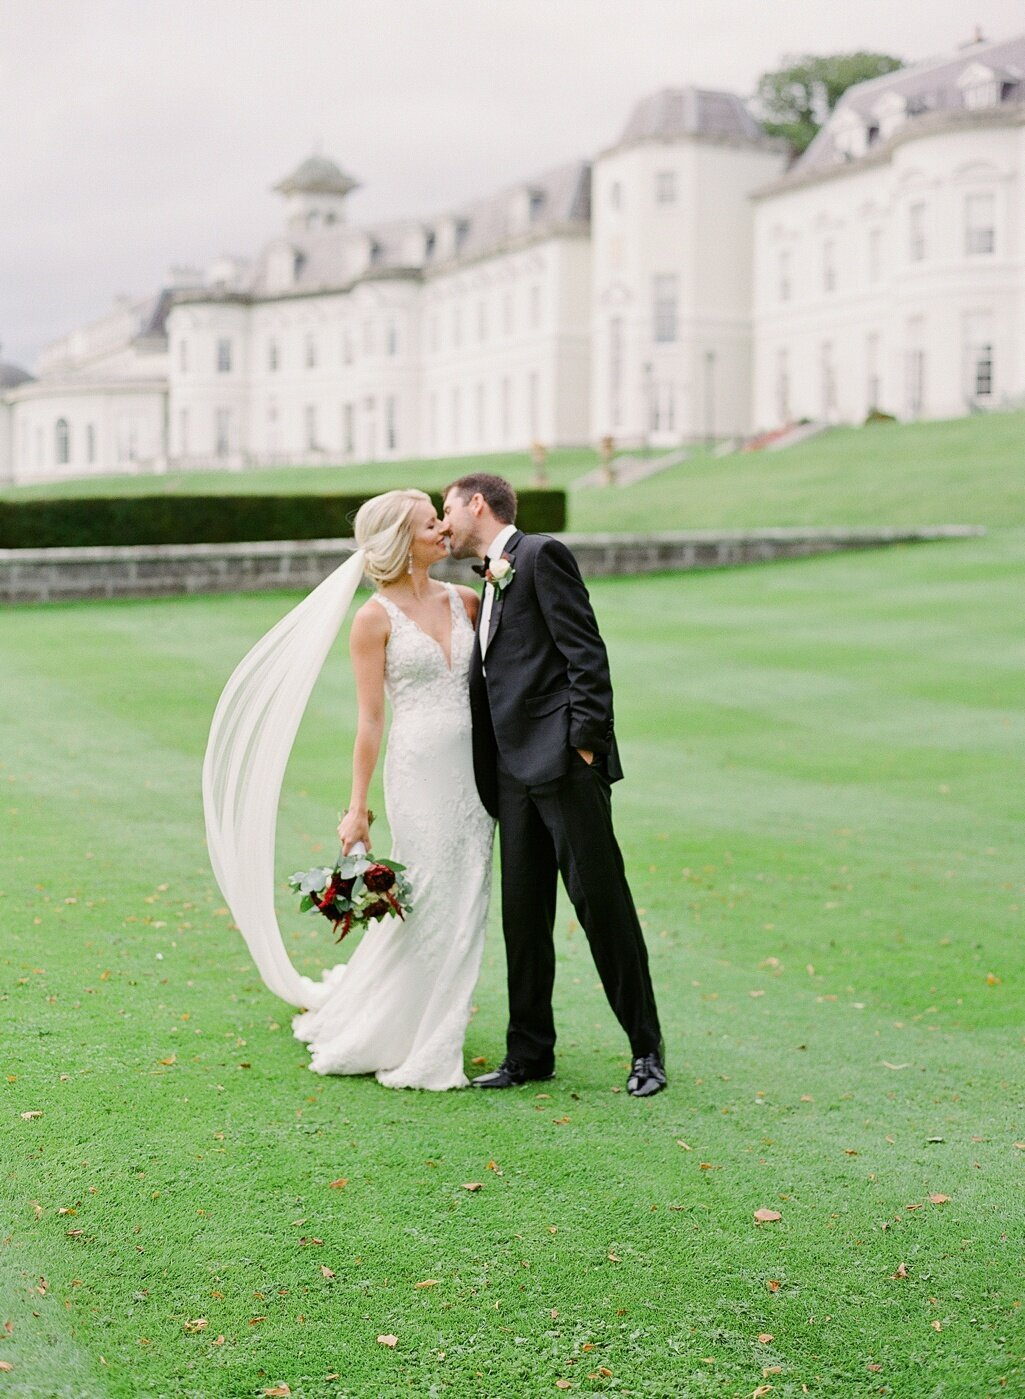 Jessie-Barksdale-Photography_K-Club-Ireland-Destination-Wedding-Photographer_0077